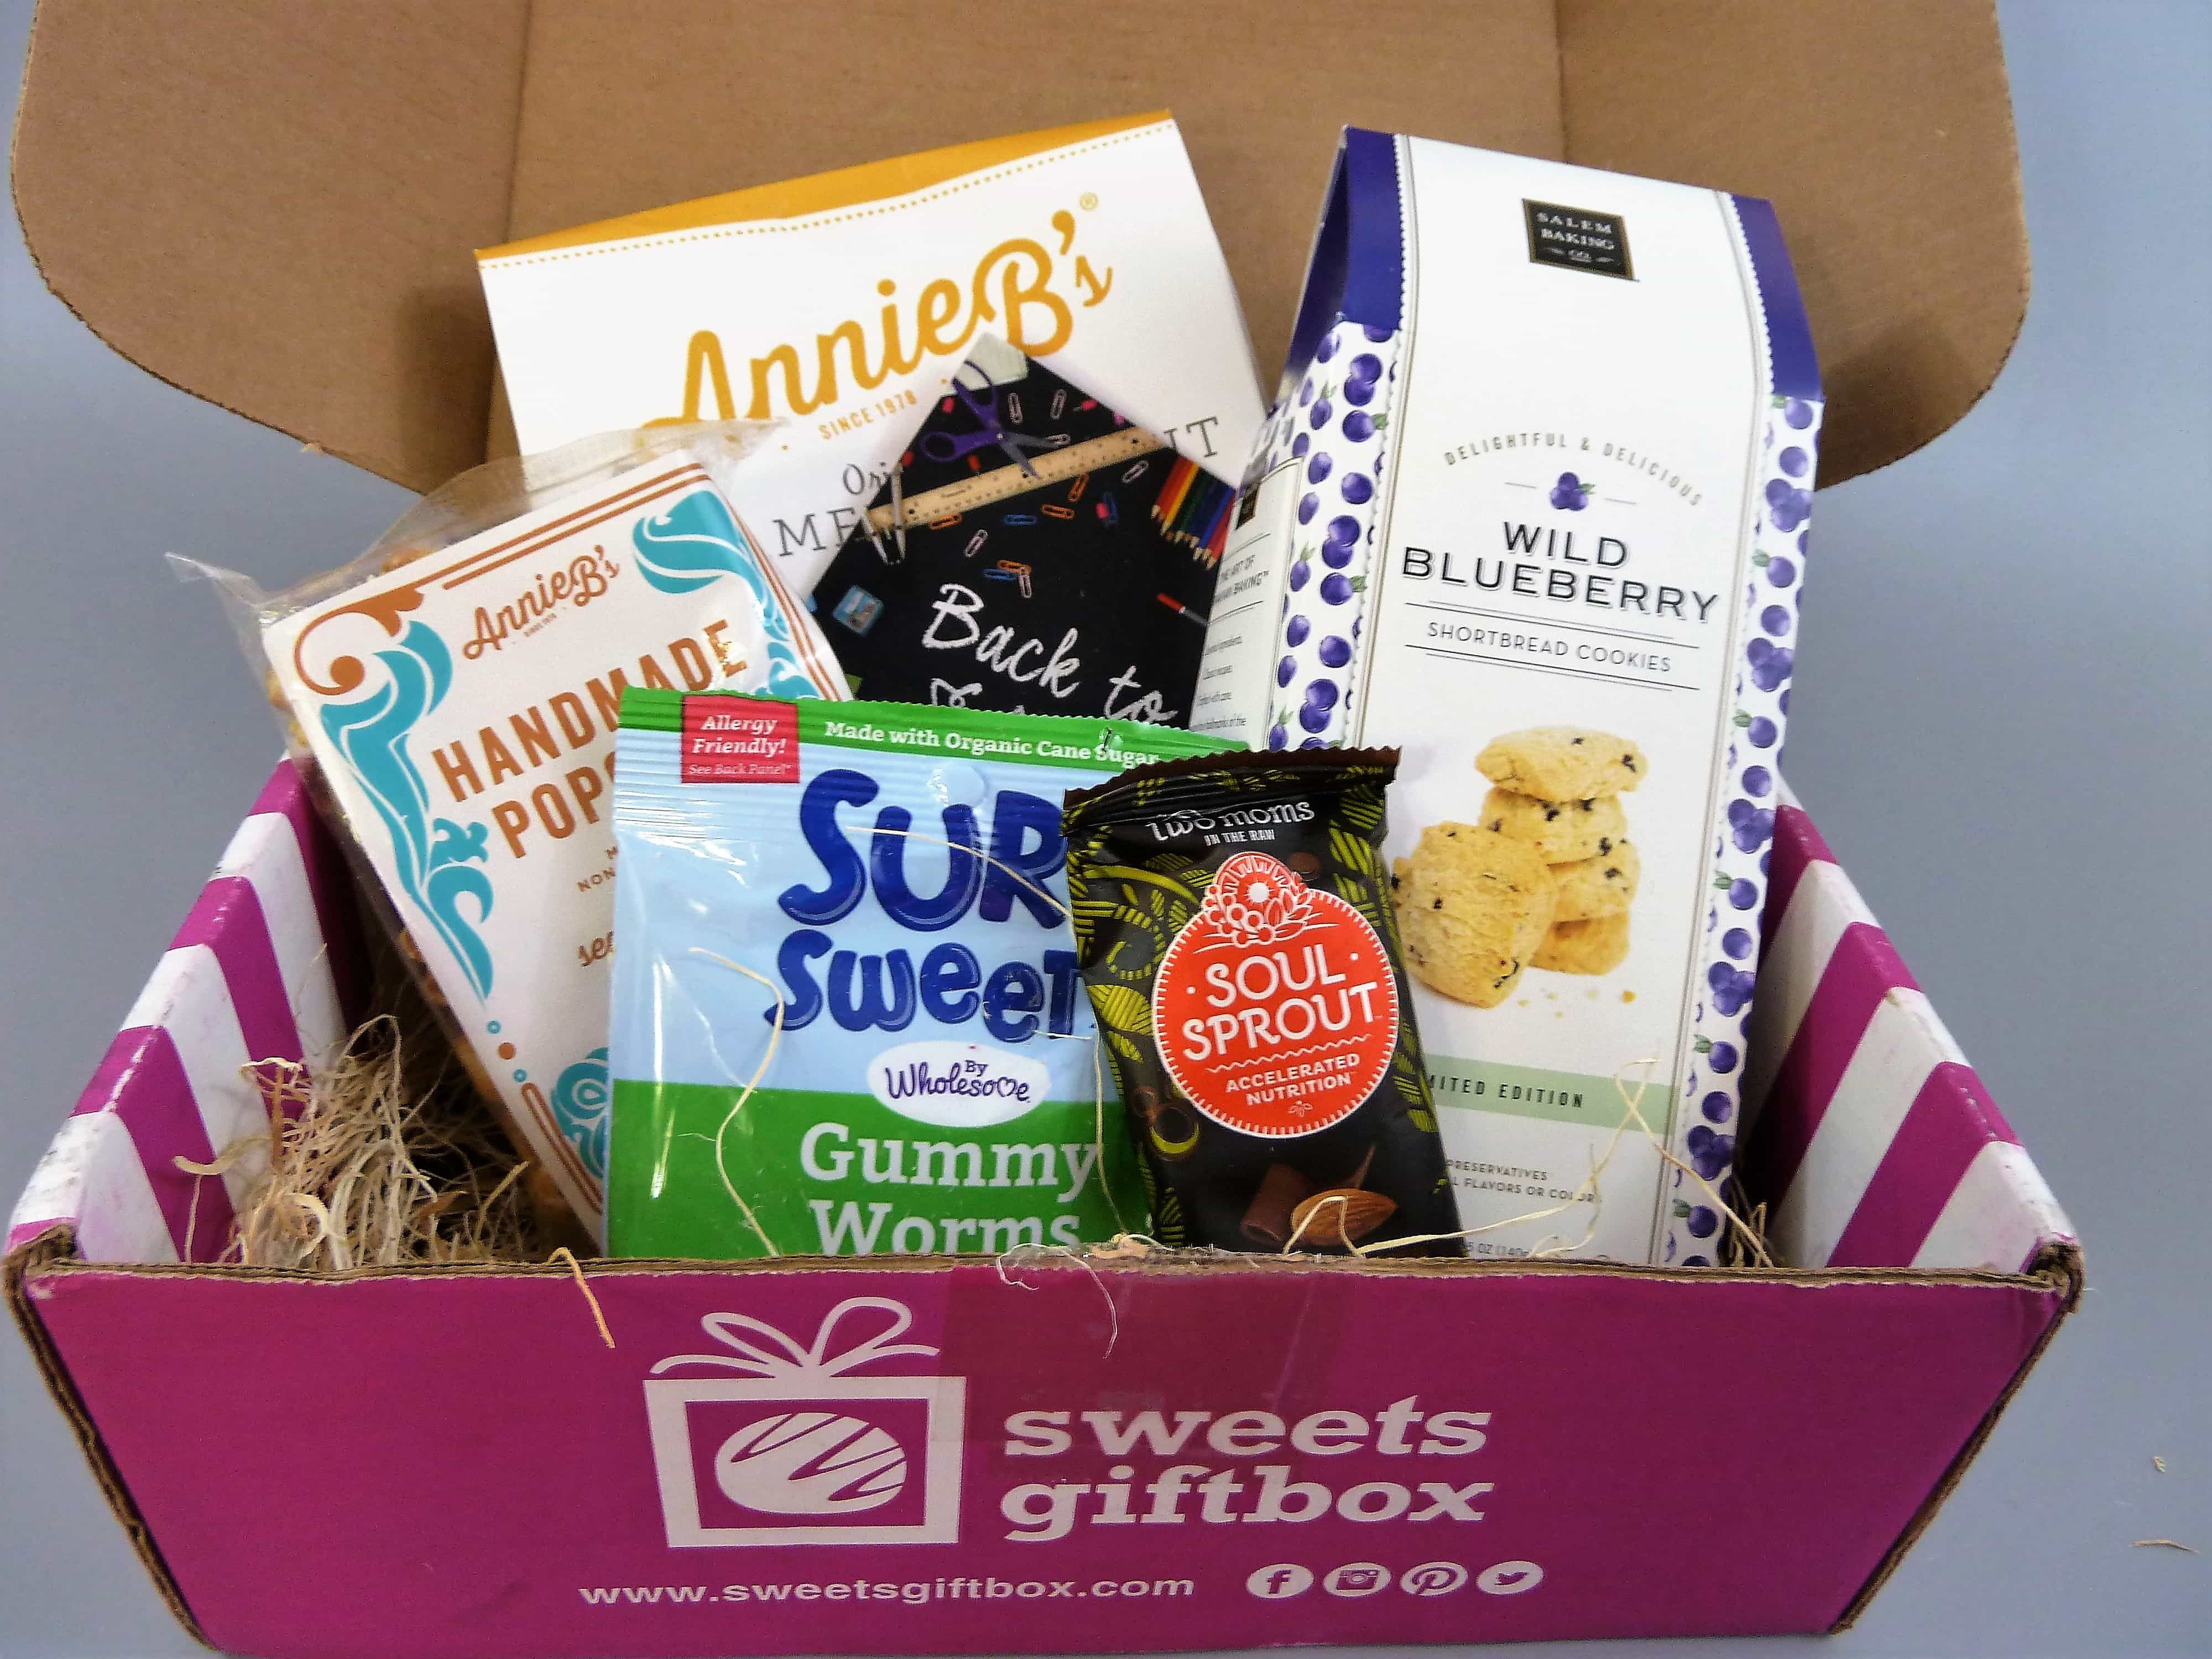 Sweets Gift Box September 2017 Subscription Box Review + 50% Off Coupon!